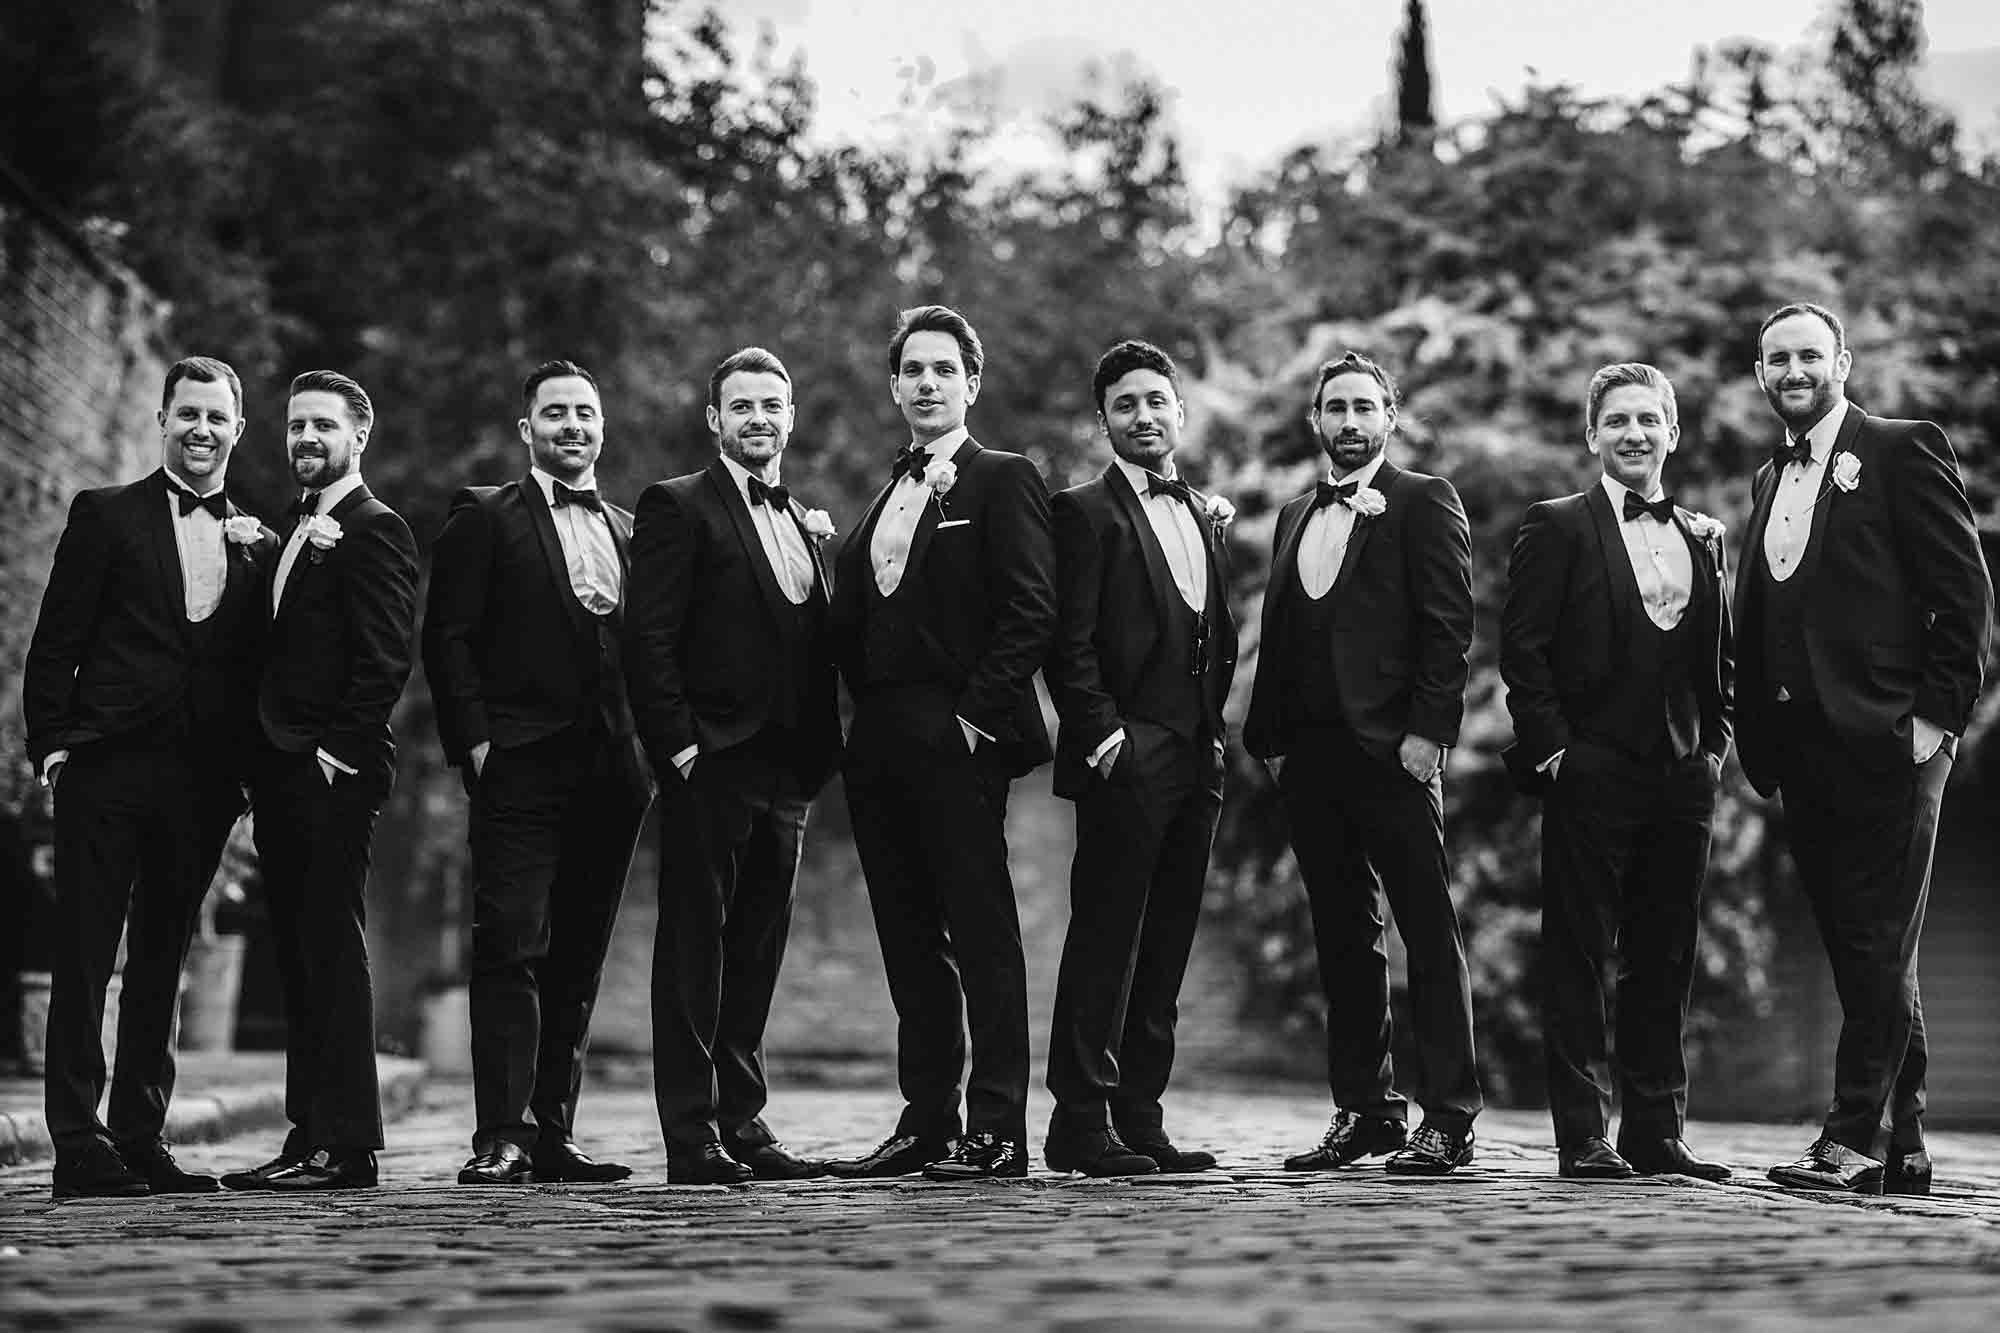 Jewish Groomsmen ideas Photos